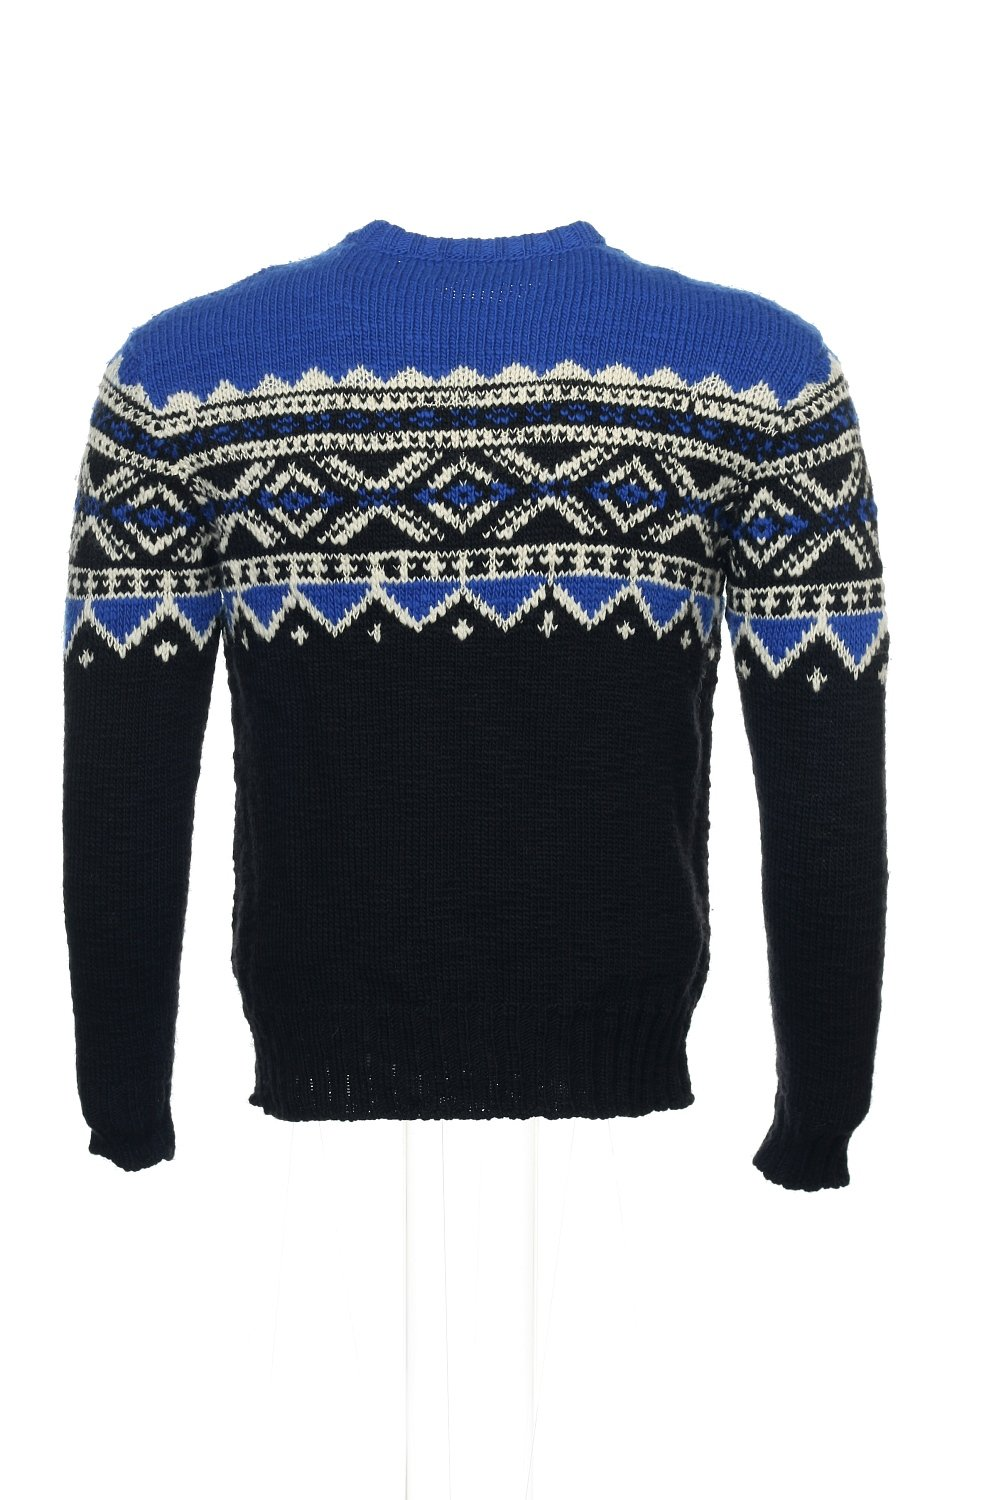 Polo Ralph Lauren Men's Nordic-Print Sweater Small Blue/Black/White by RALPH LAUREN (Image #3)